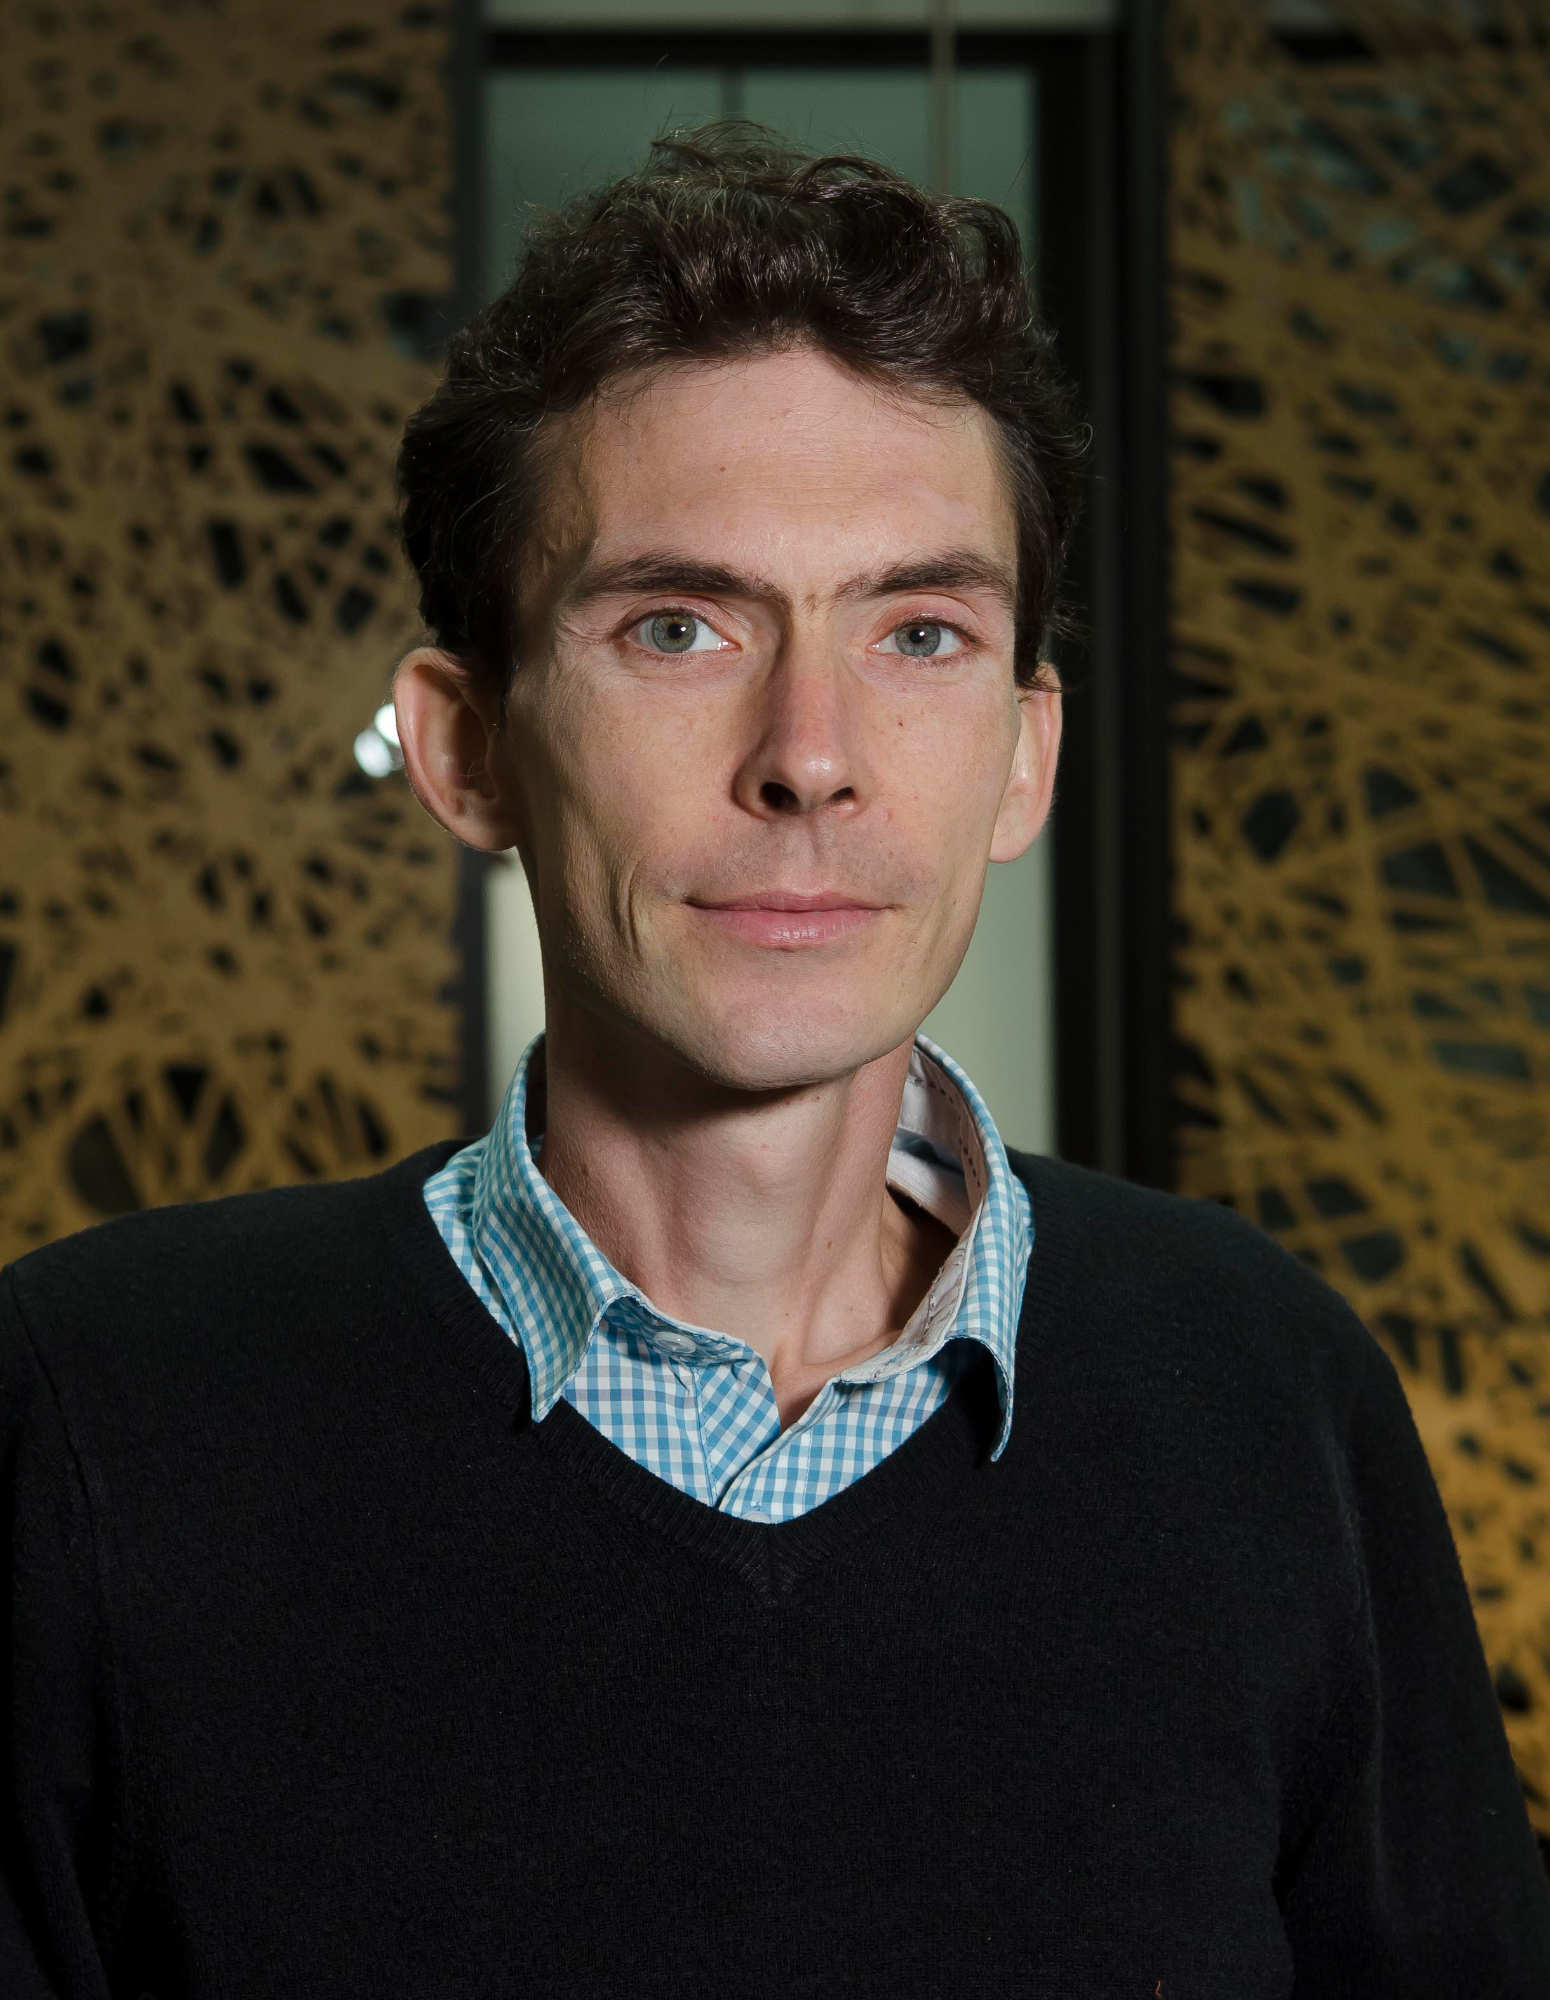 Photo of a man wearing a lightblue checkered collar shirt with a black jumper over it, looking into the camera.